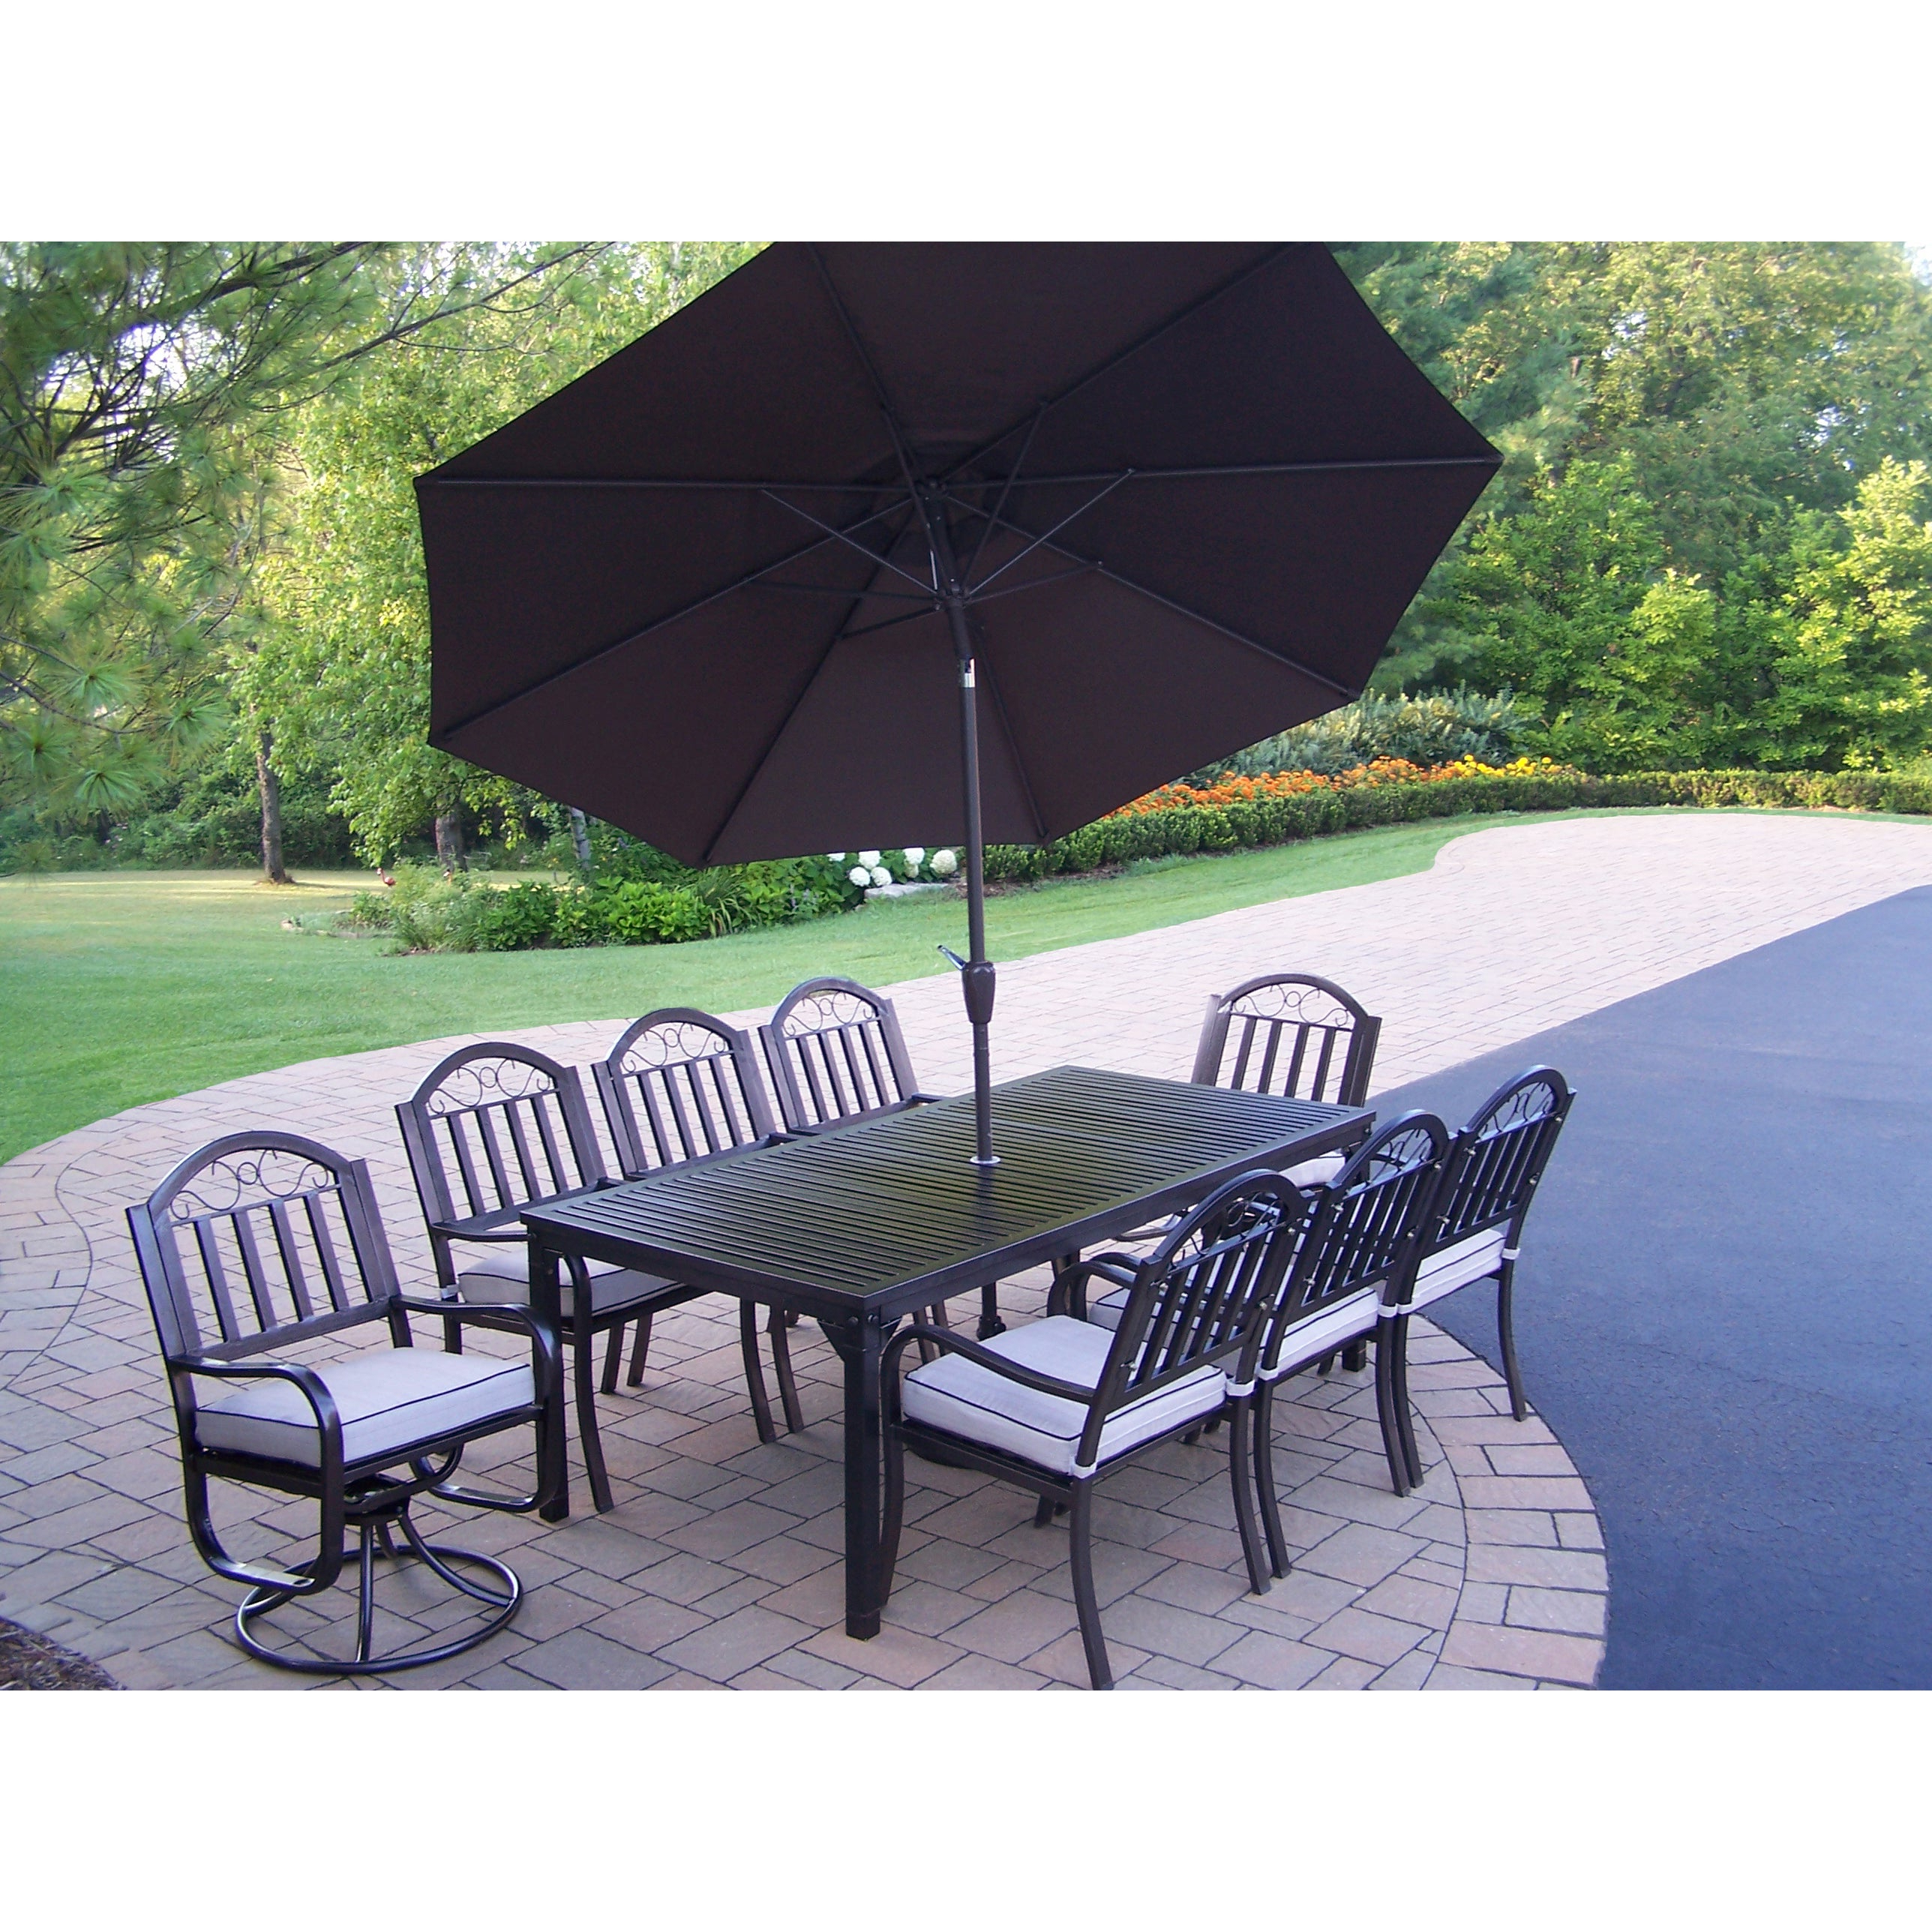 Buy Size 11 Piece Sets Outdoor Dining Sets Online At Overstock (View 14 of 20)